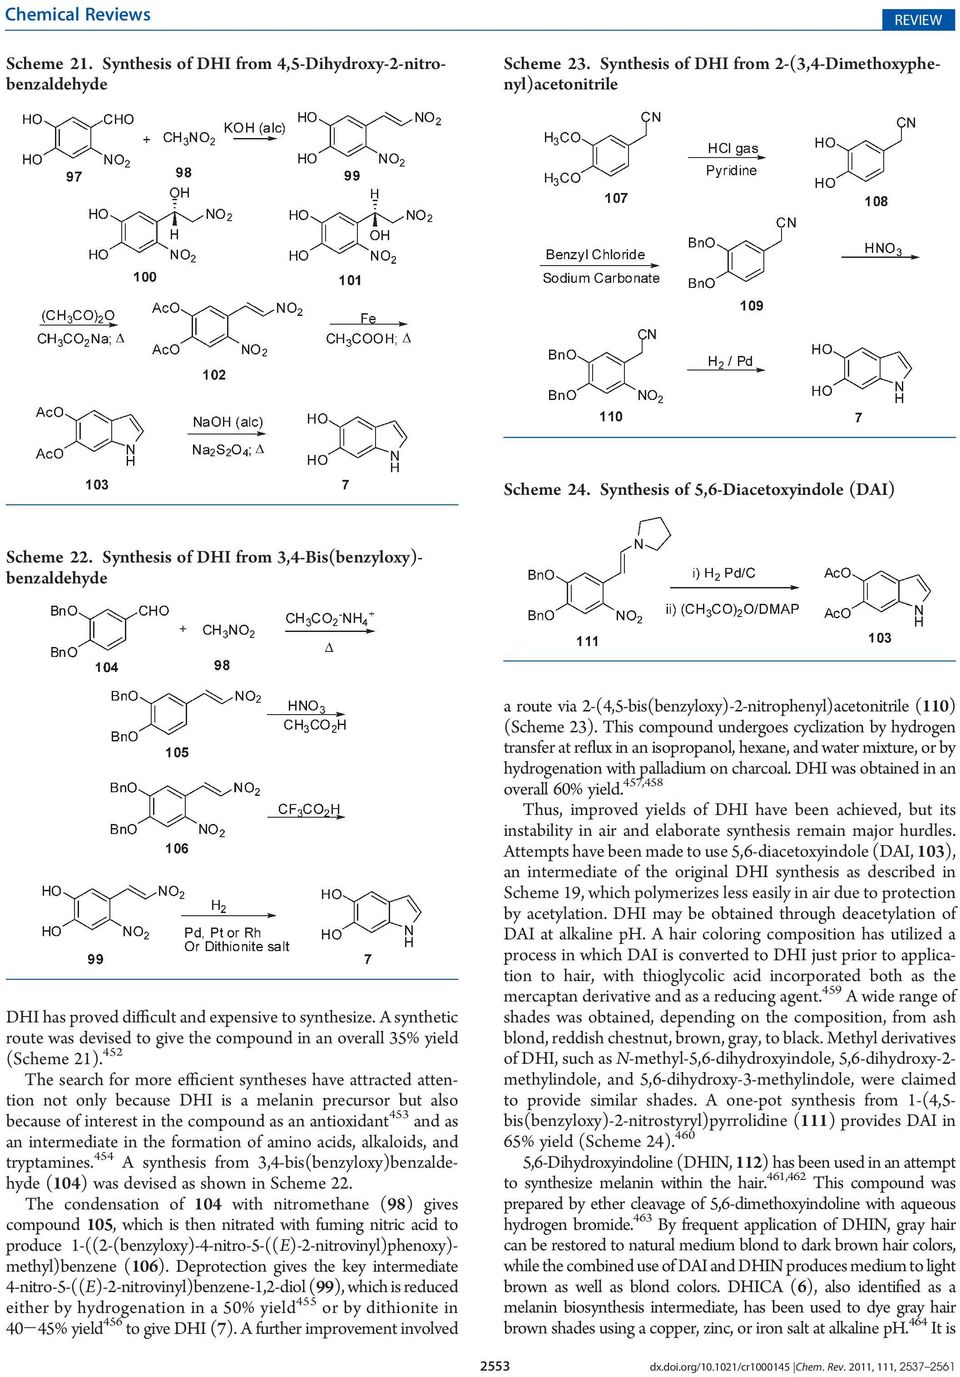 452 The search for more efficient syntheses have attracted attention not only because DHI is a melanin precursor but also because of interest in the compound as an antioxidant 453 and as an